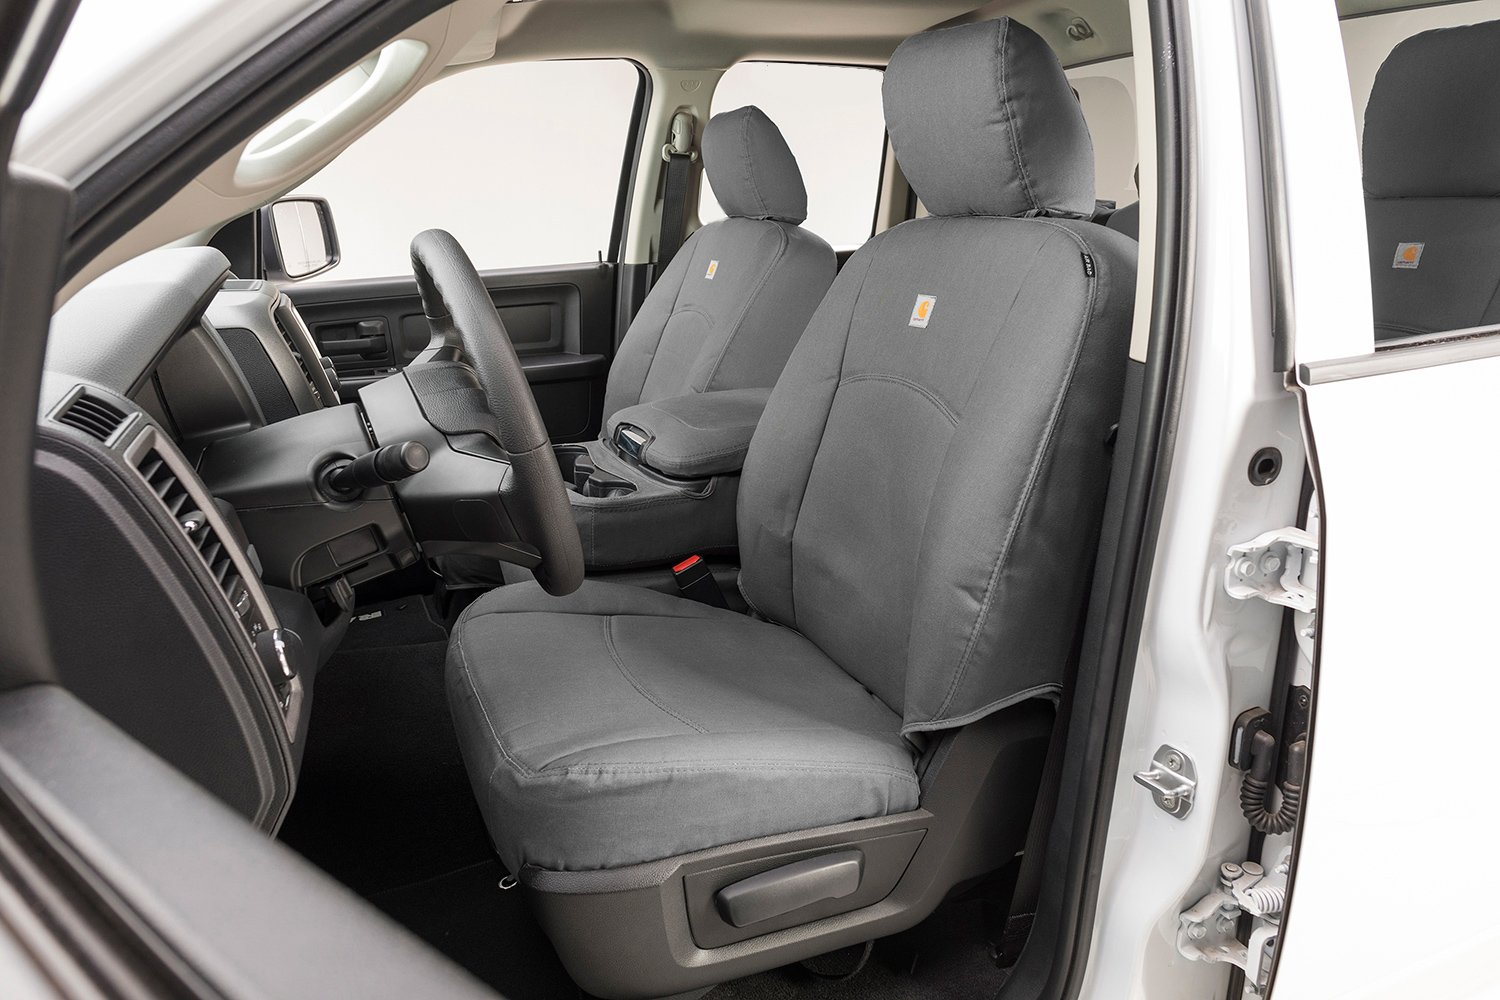 Toyota Sienna Seat Covers >> Carhartt Precision Fit Seat Covers - Read Reviews & FREE Shipping!